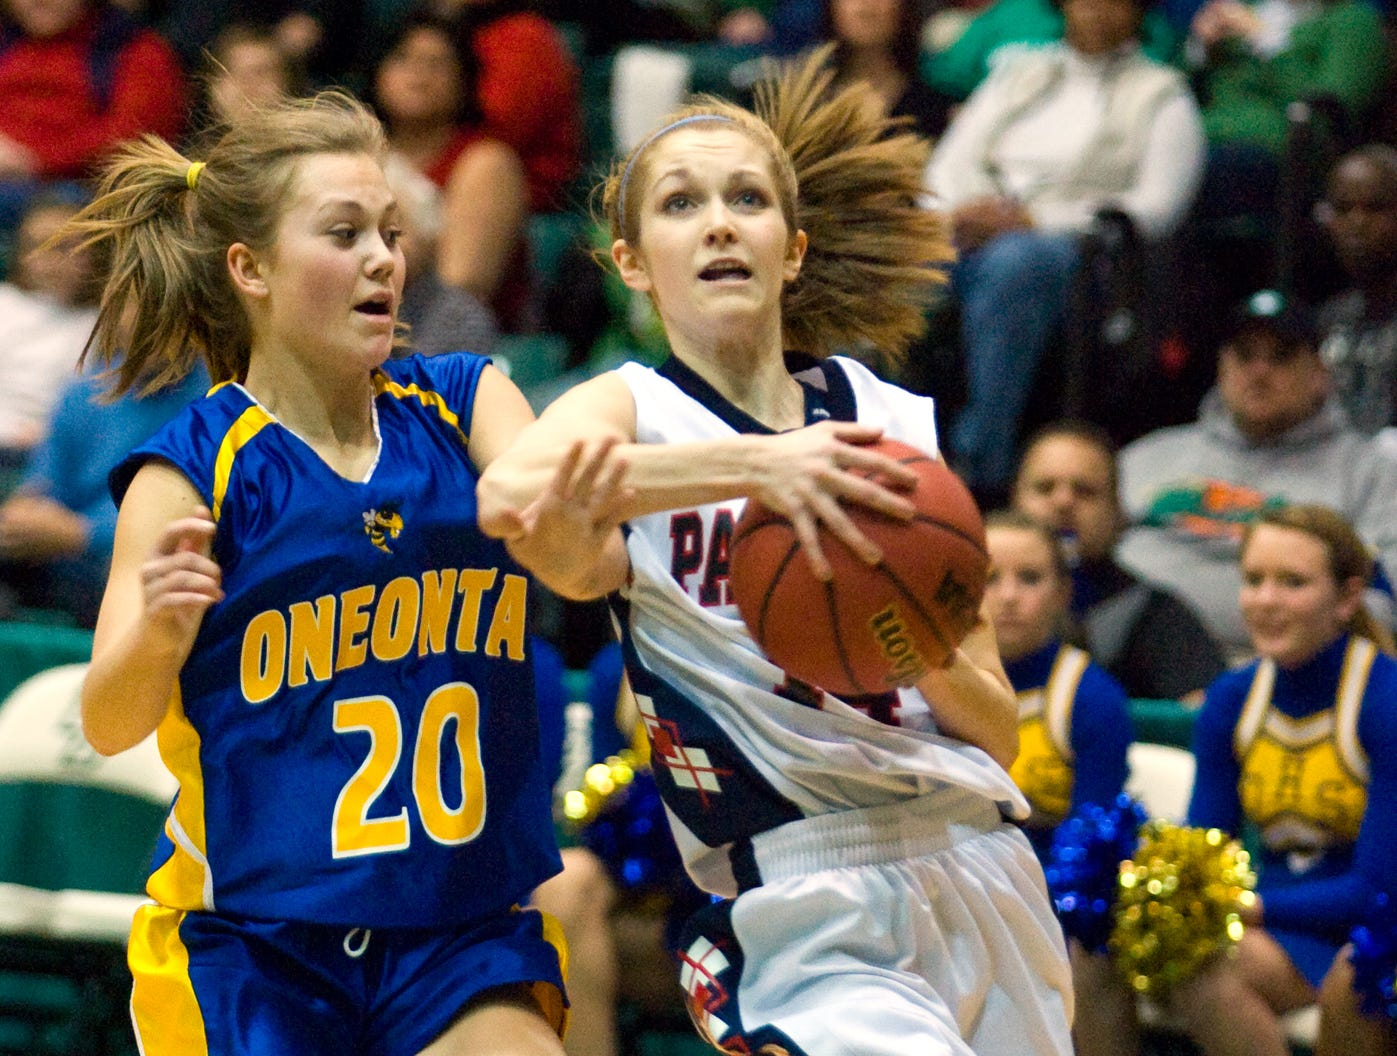 2011: Binghamton's Alexis Esworthy charges the basket as Oneonta's Hayley Dower defends Saturday evening during the STAC basketball Championships at the Binghamton University Events Center in Vestal.